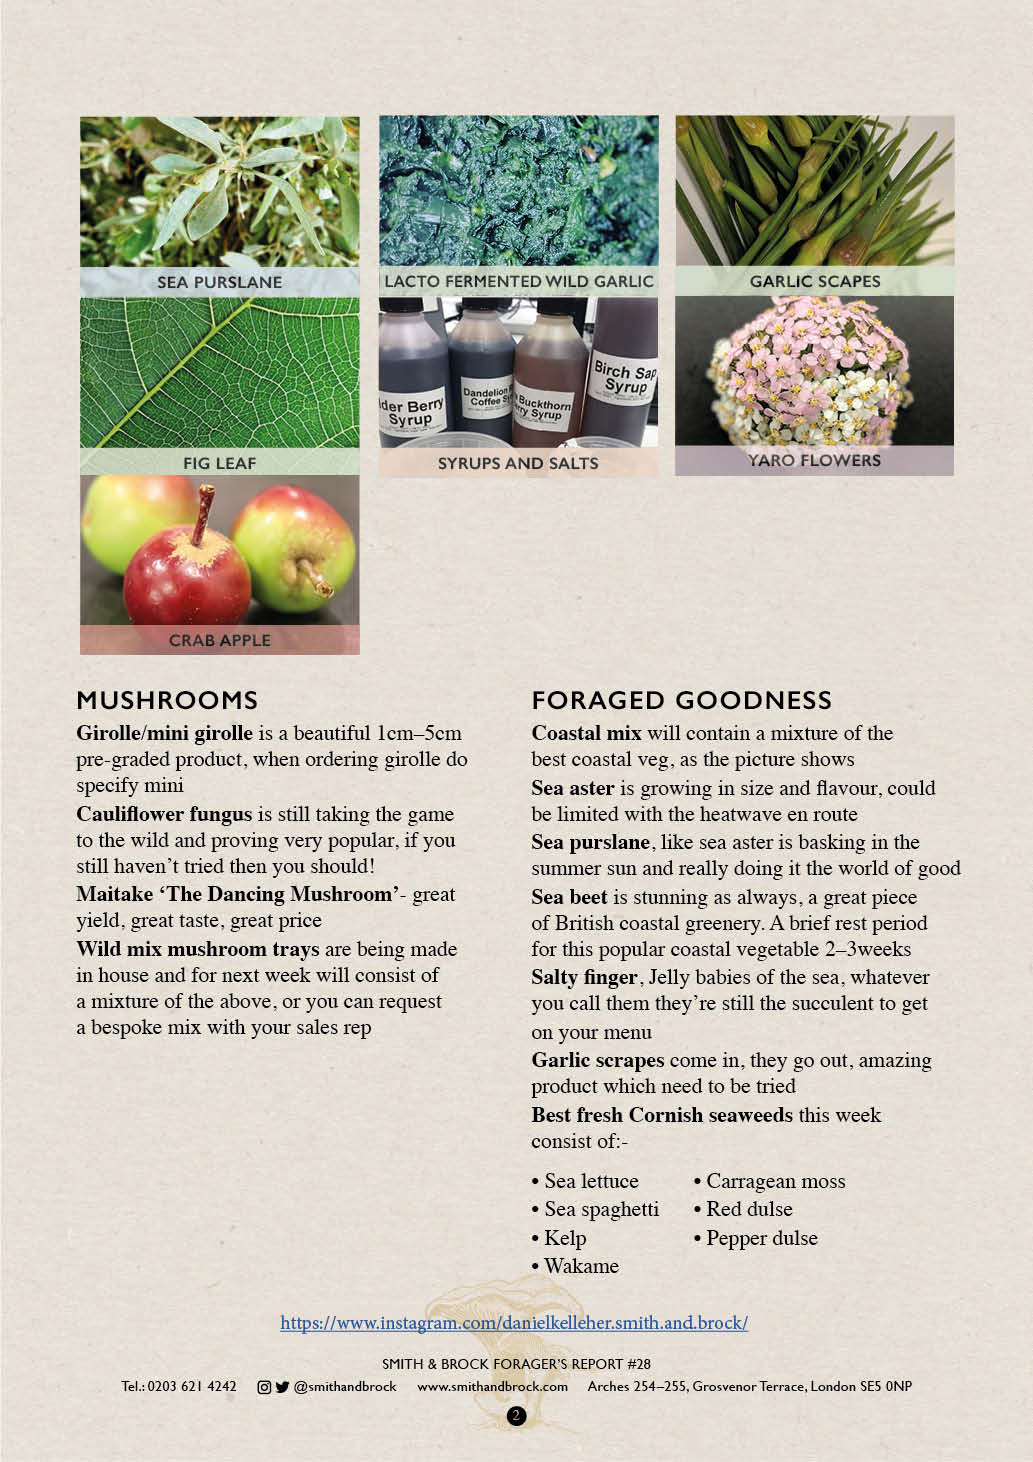 Smith&Brock Foraged Products Report 14 Oct 2019 282